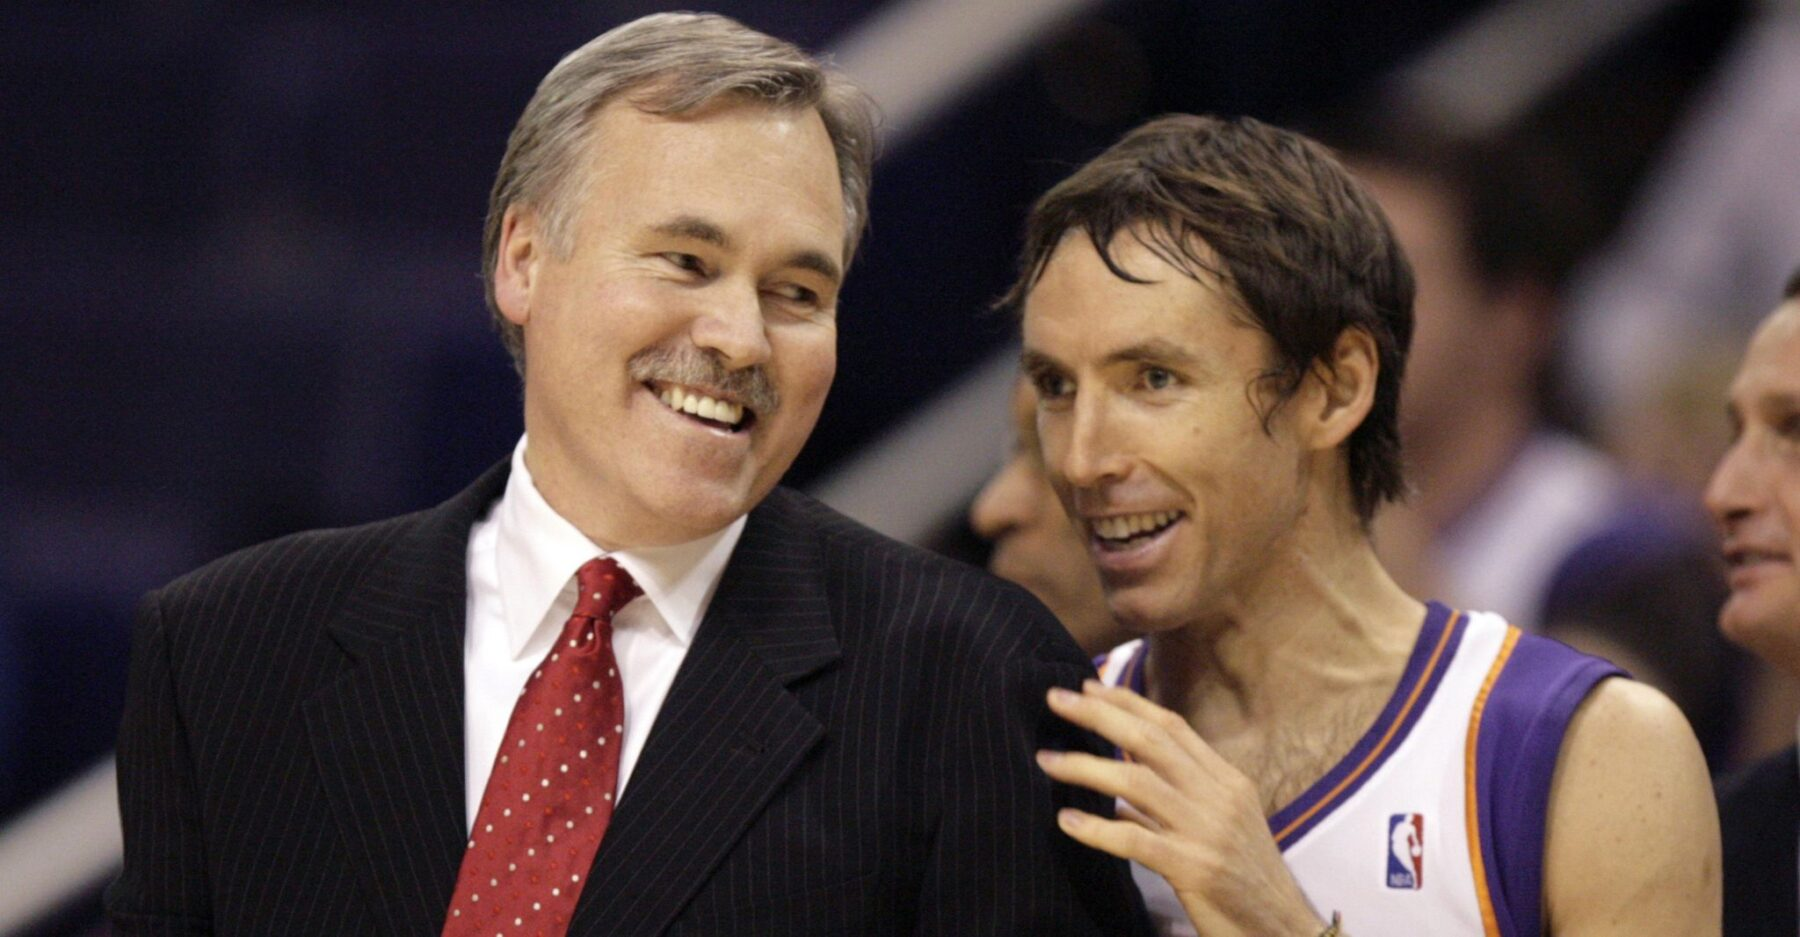 NBA Coaching Report: Steve Nash Credits Mike D'Antoni for Coaching Philosophy